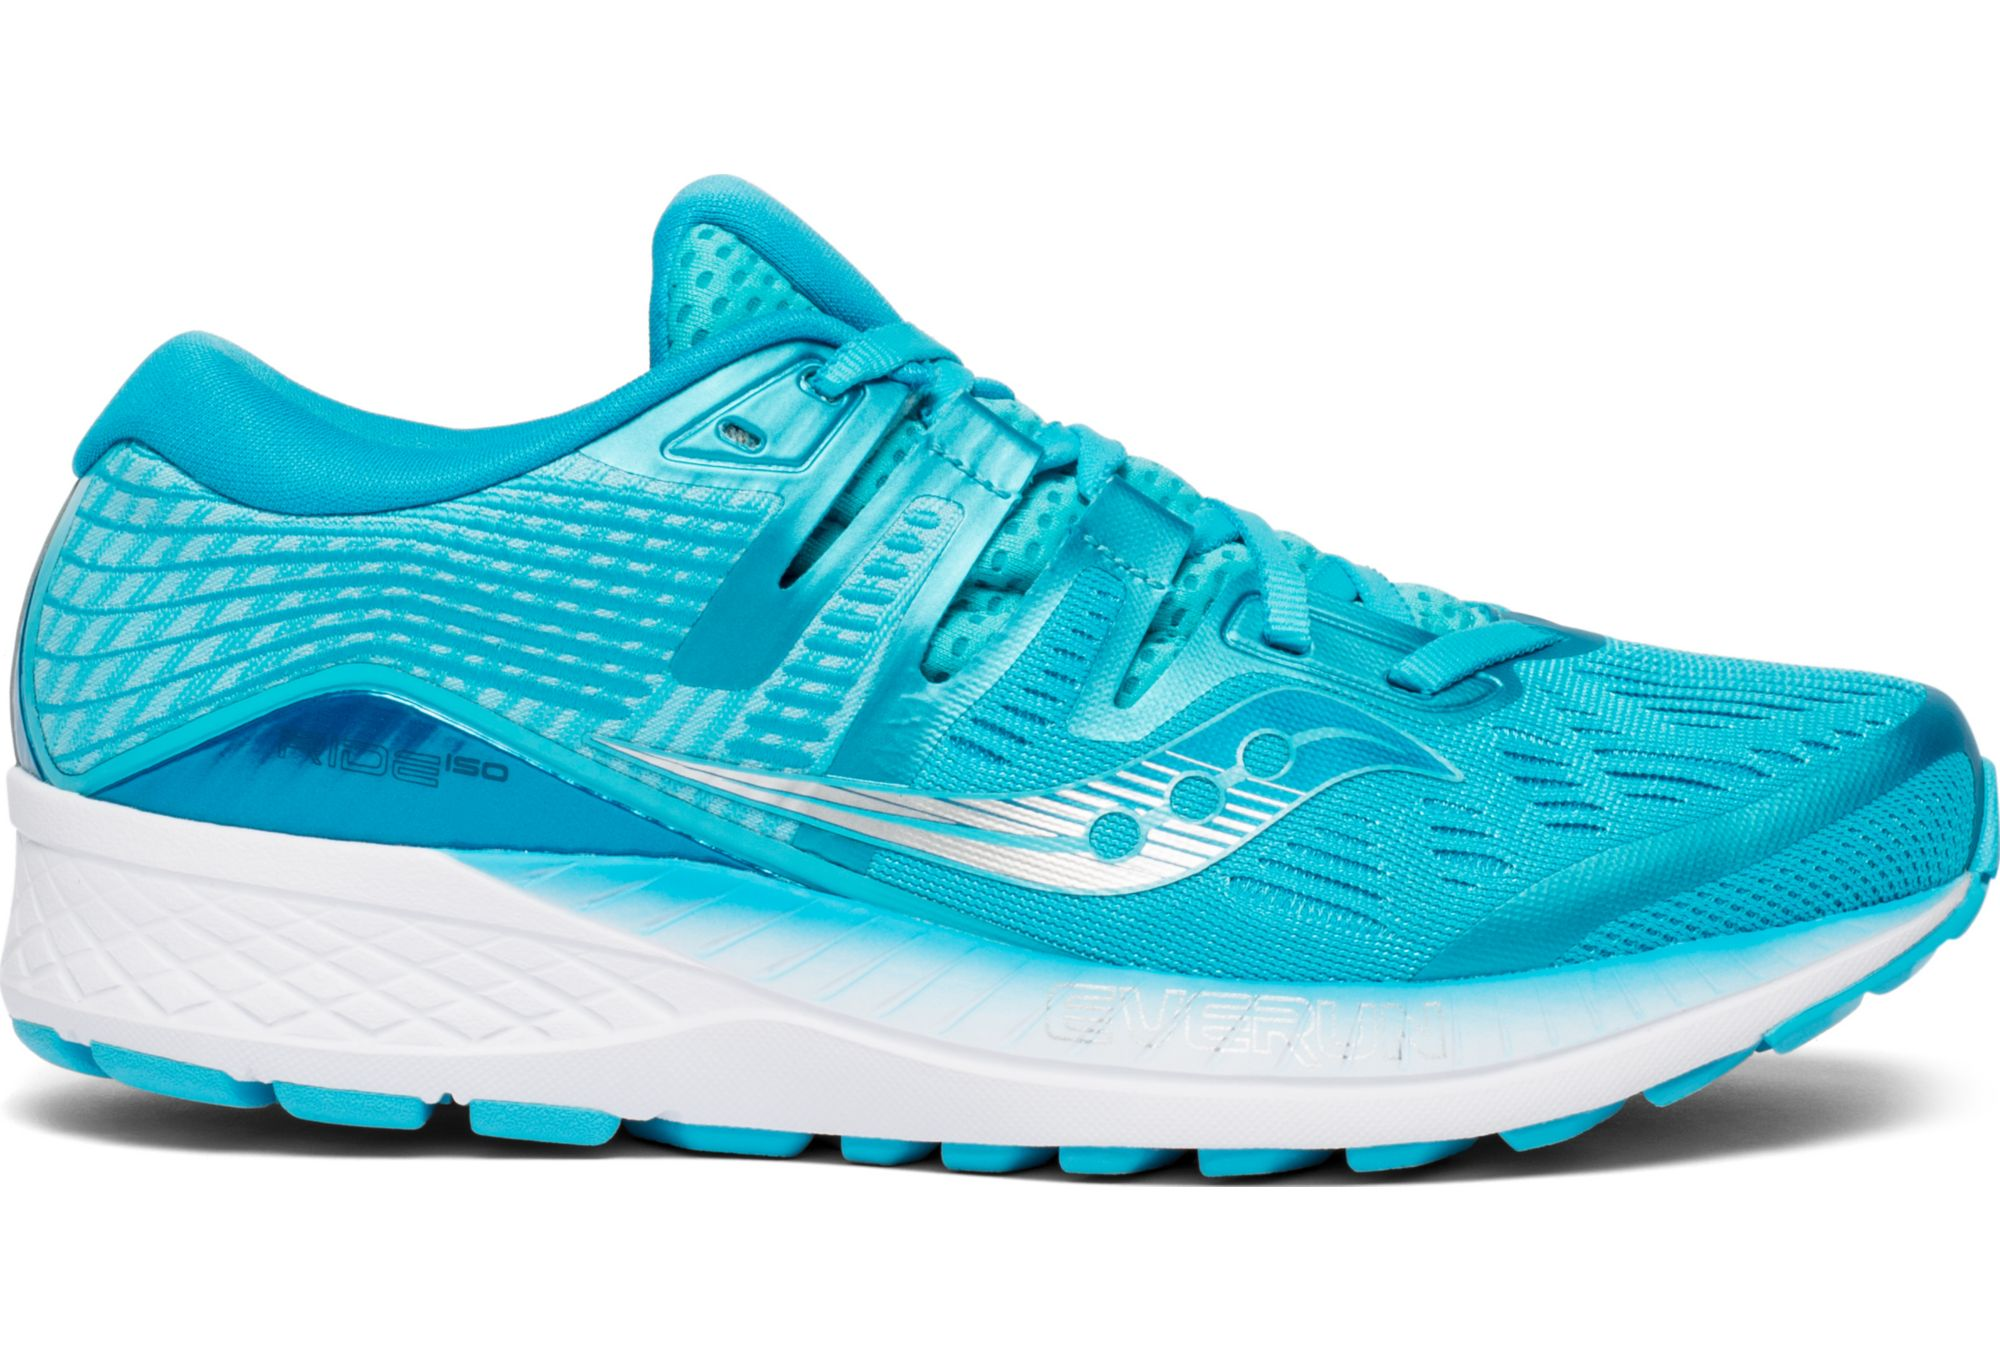 Saucony Ride Iso 2 Chaussures de Running pour Femme